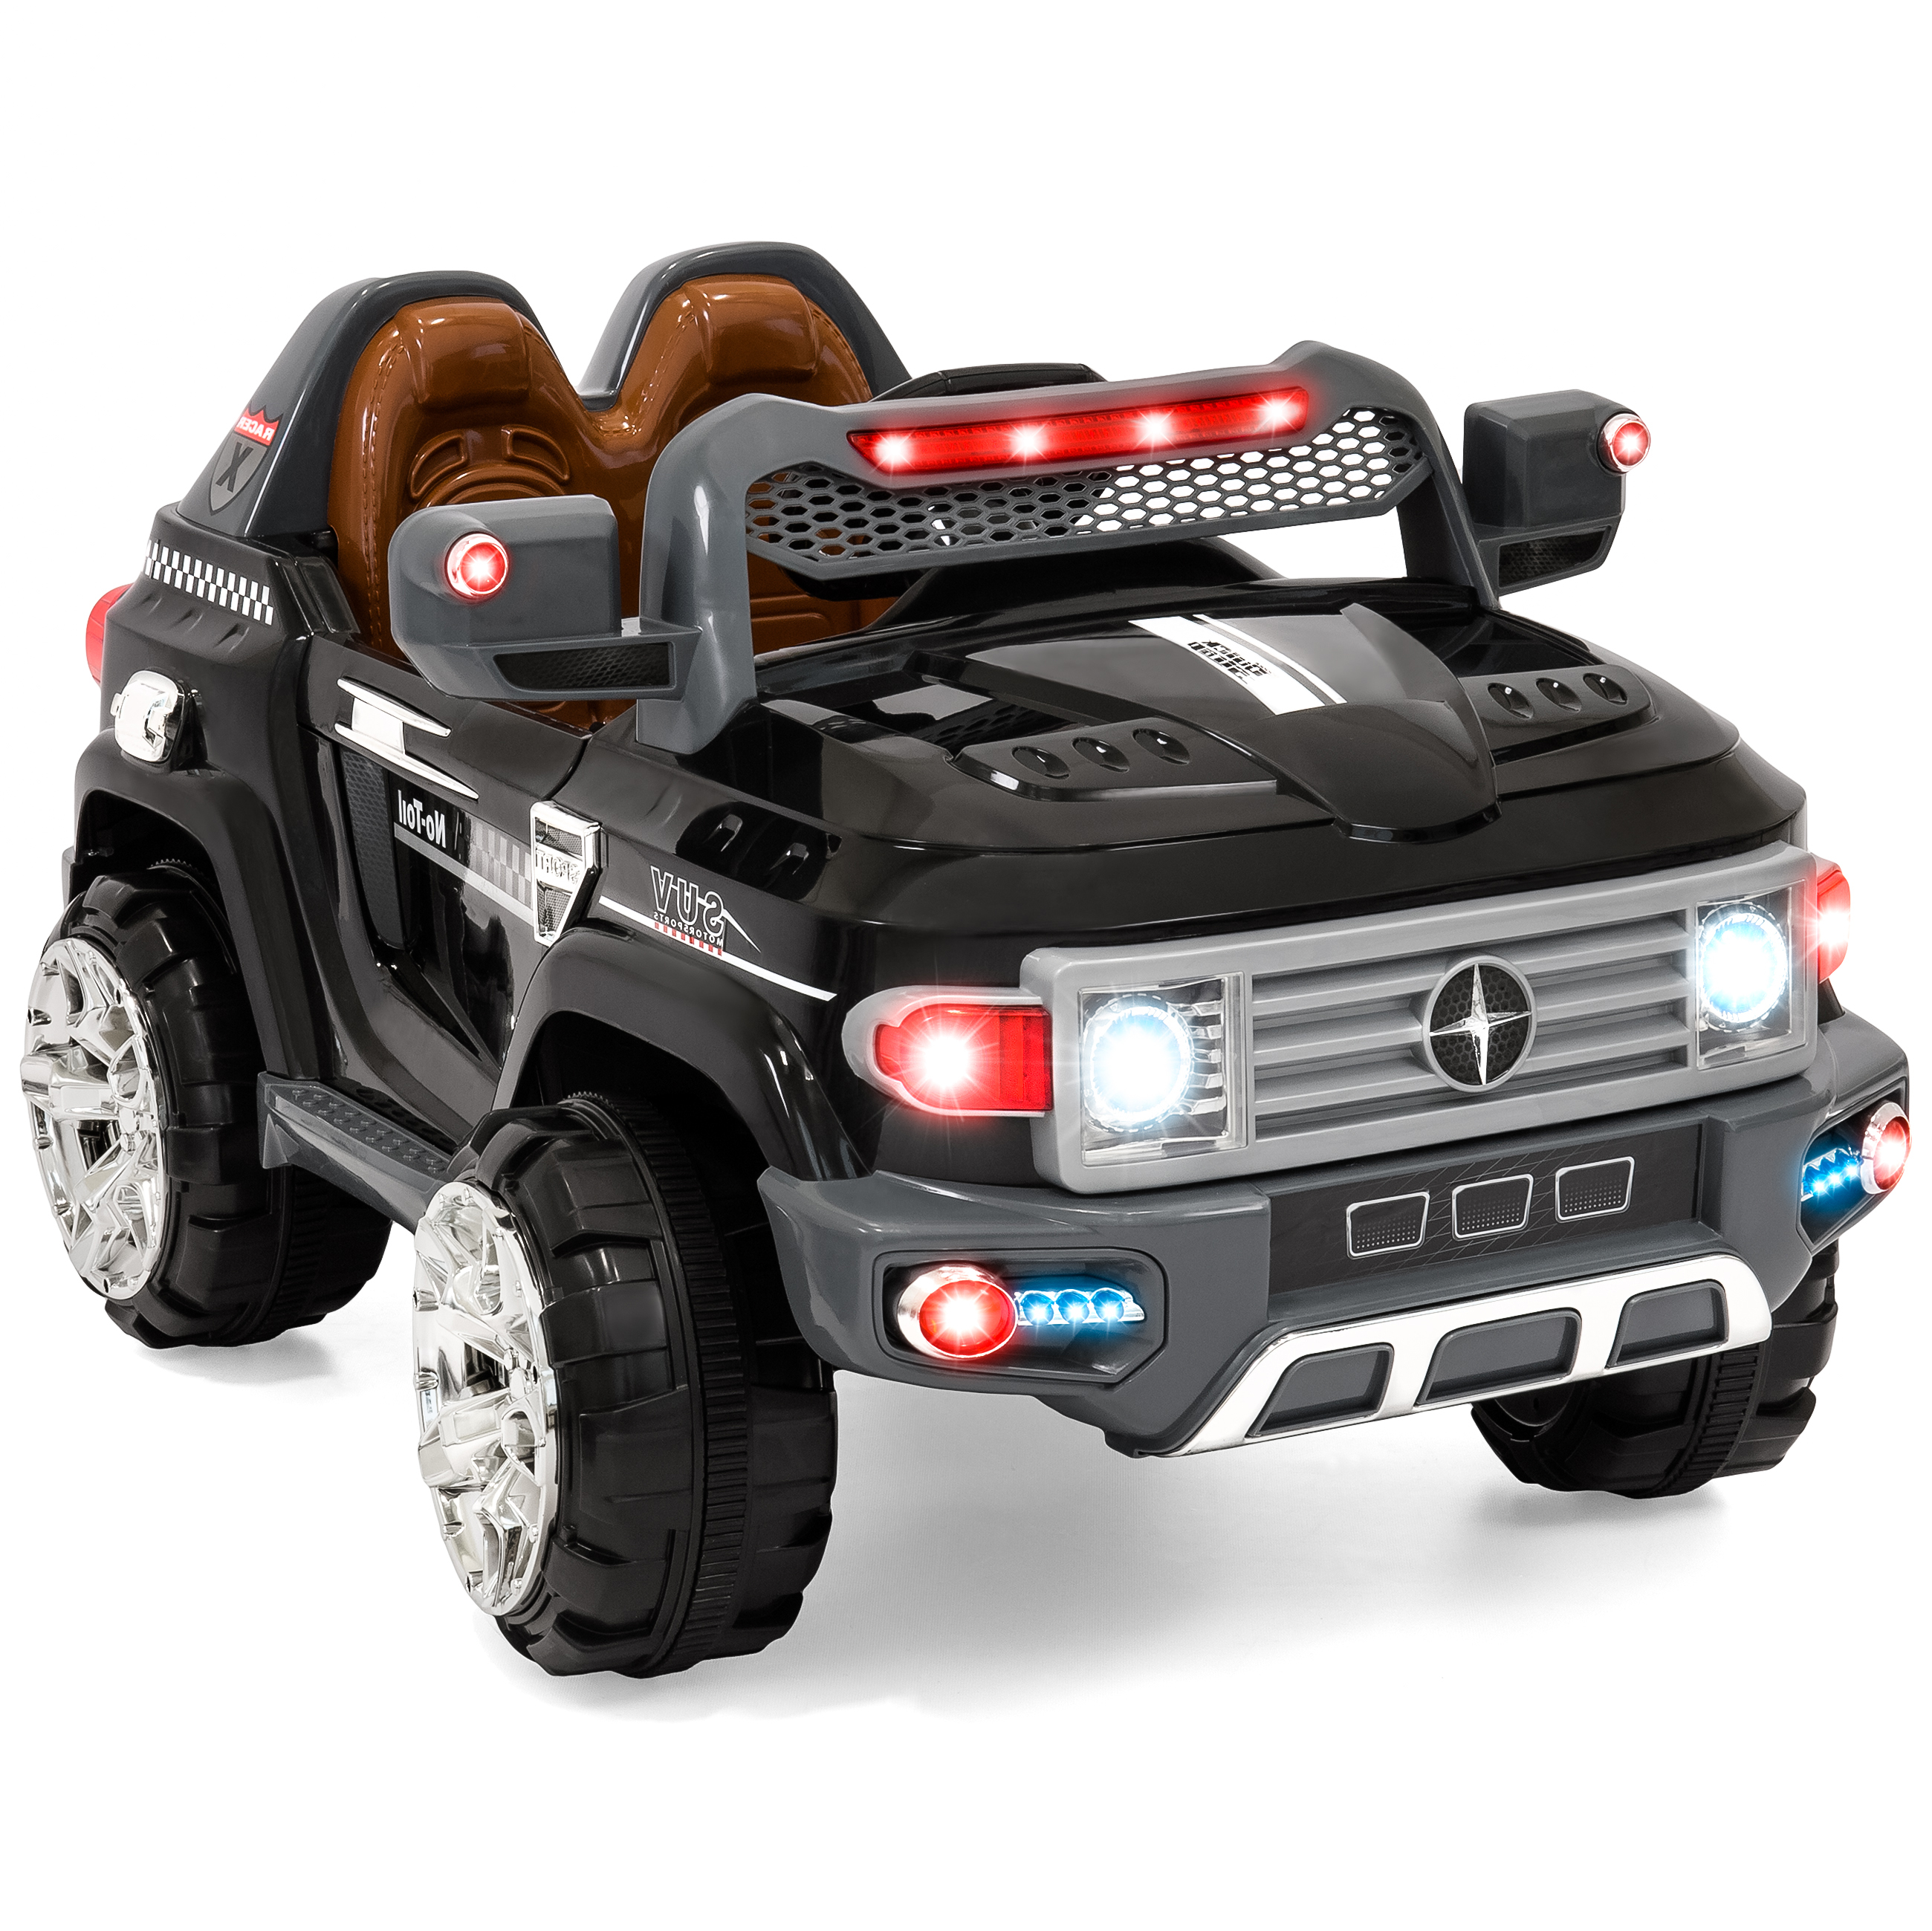 Best Choice Products 12V MP3 Kids Ride on Truck Car RC Remote Control, LED Lights, AUX and... by Best Choice Products